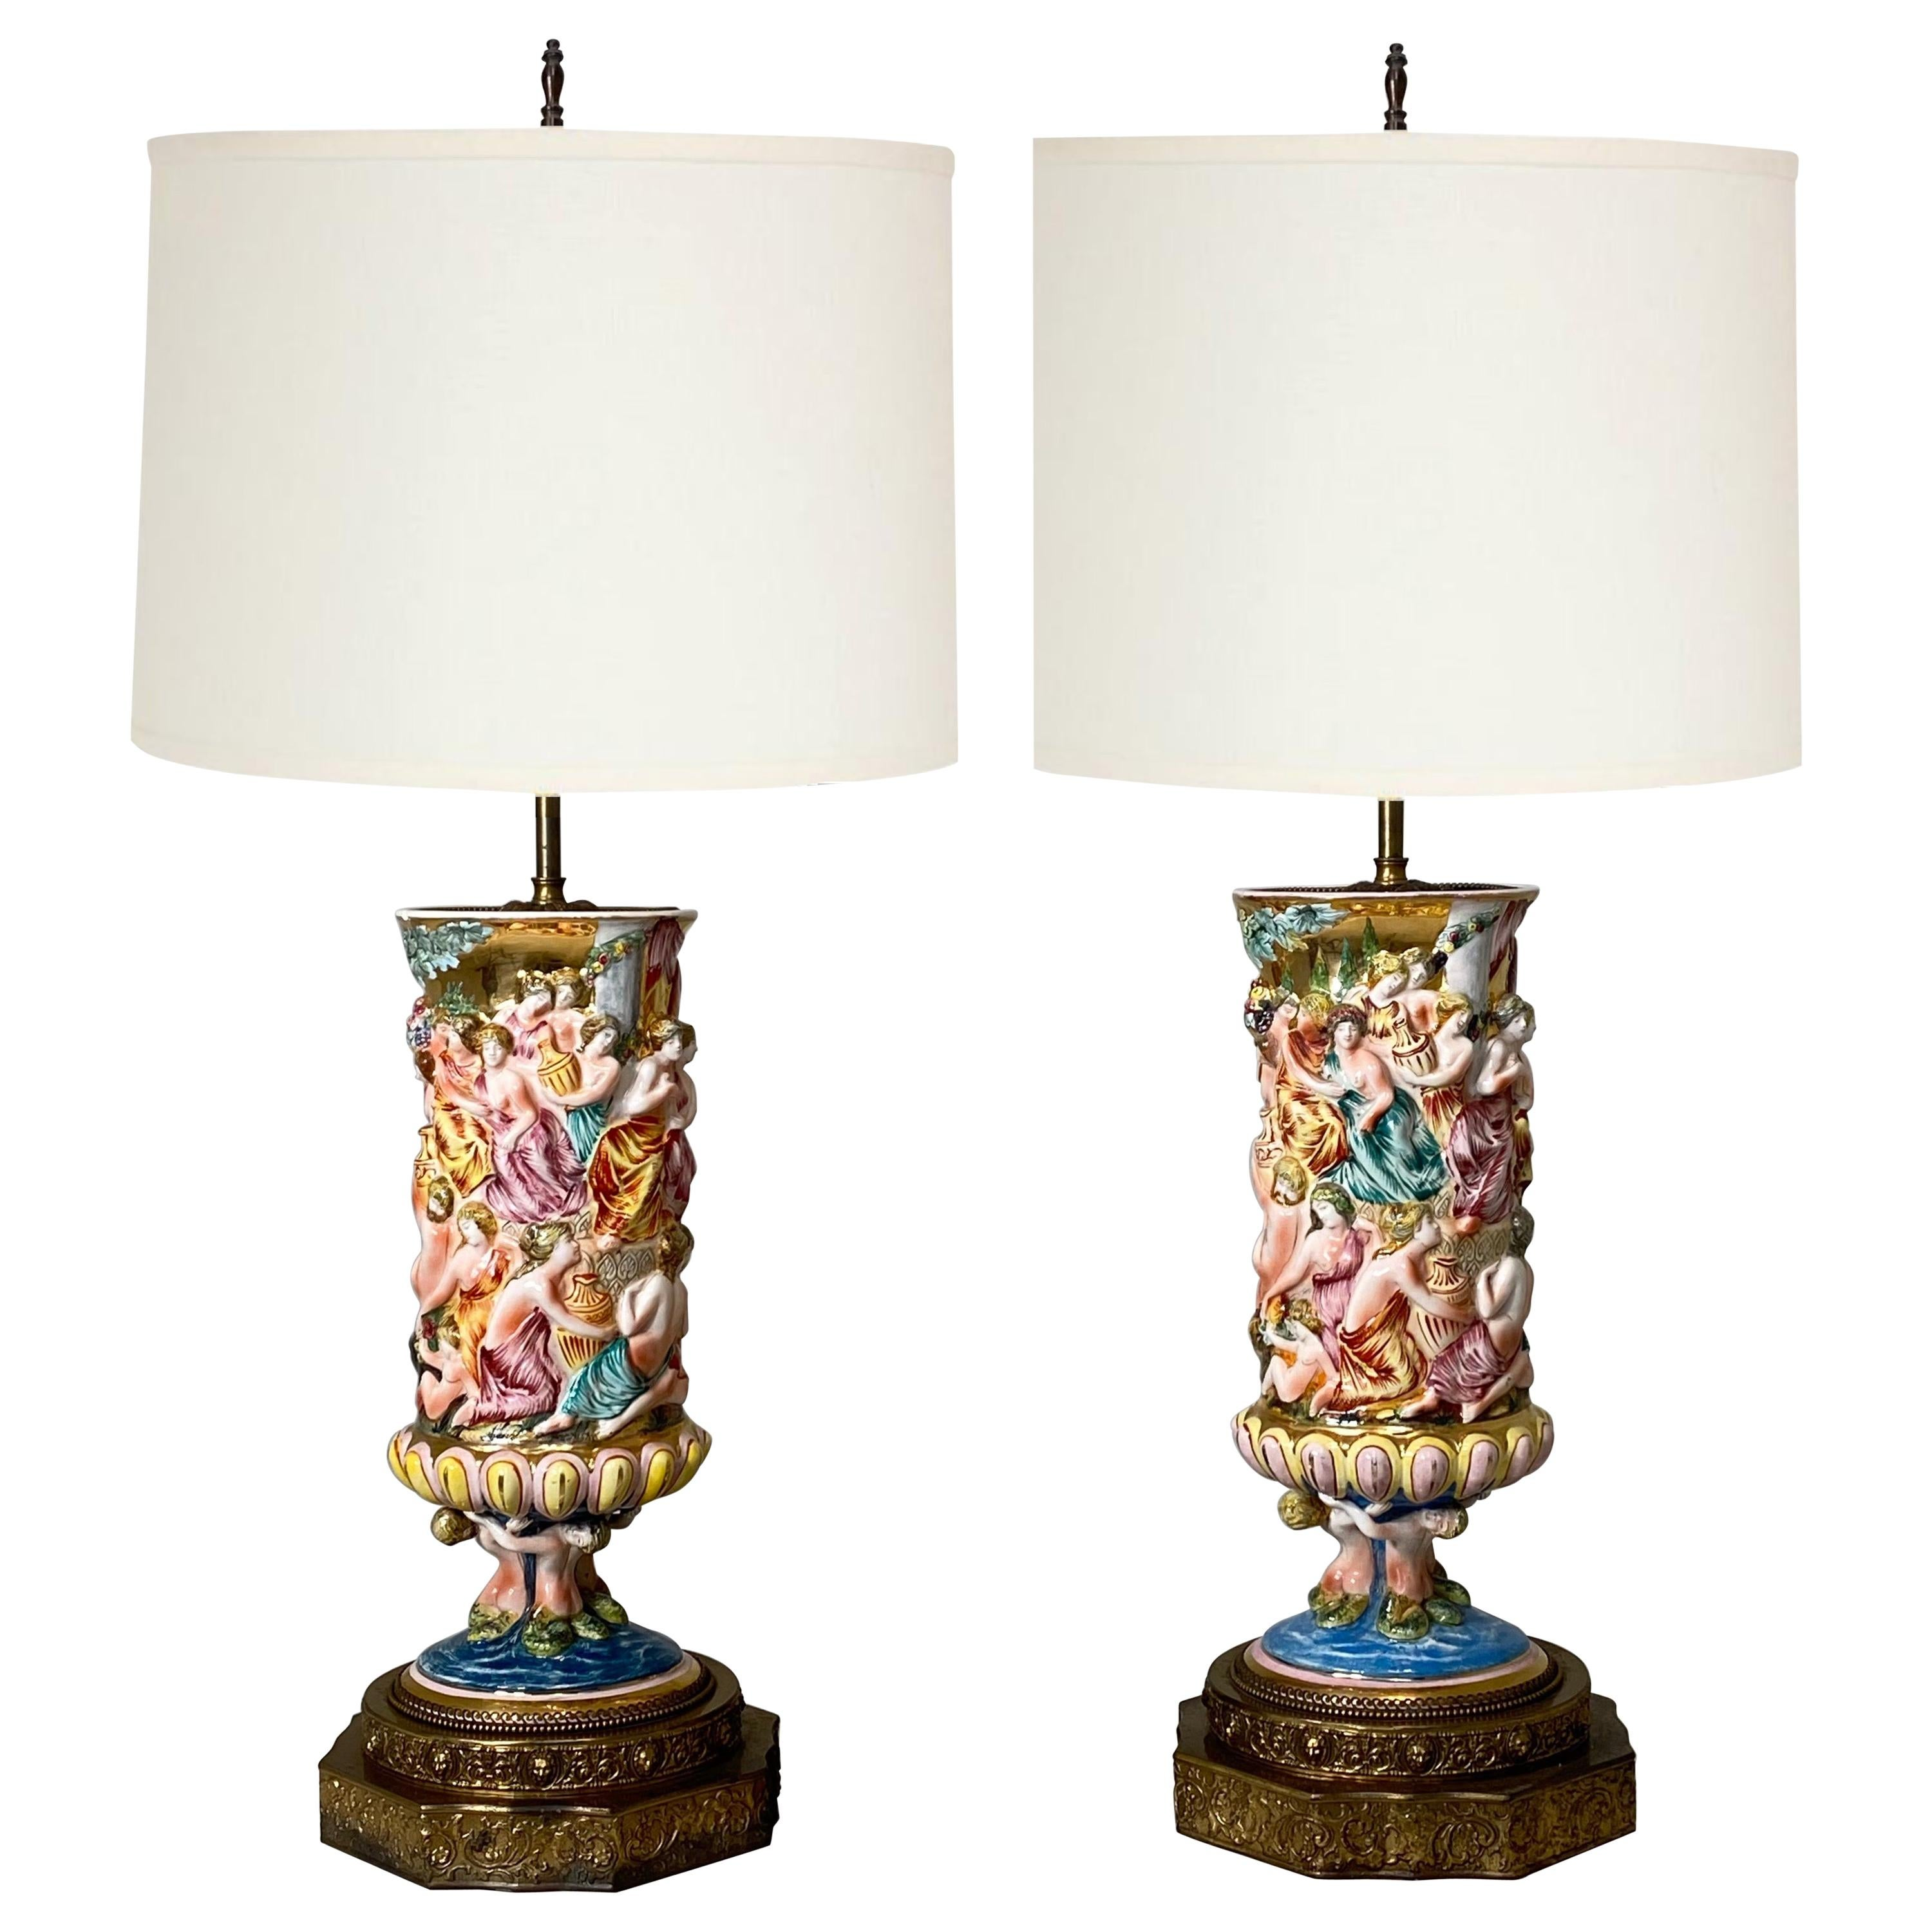 Monumental Pair of Porcelain Capodimonte Table Lamps